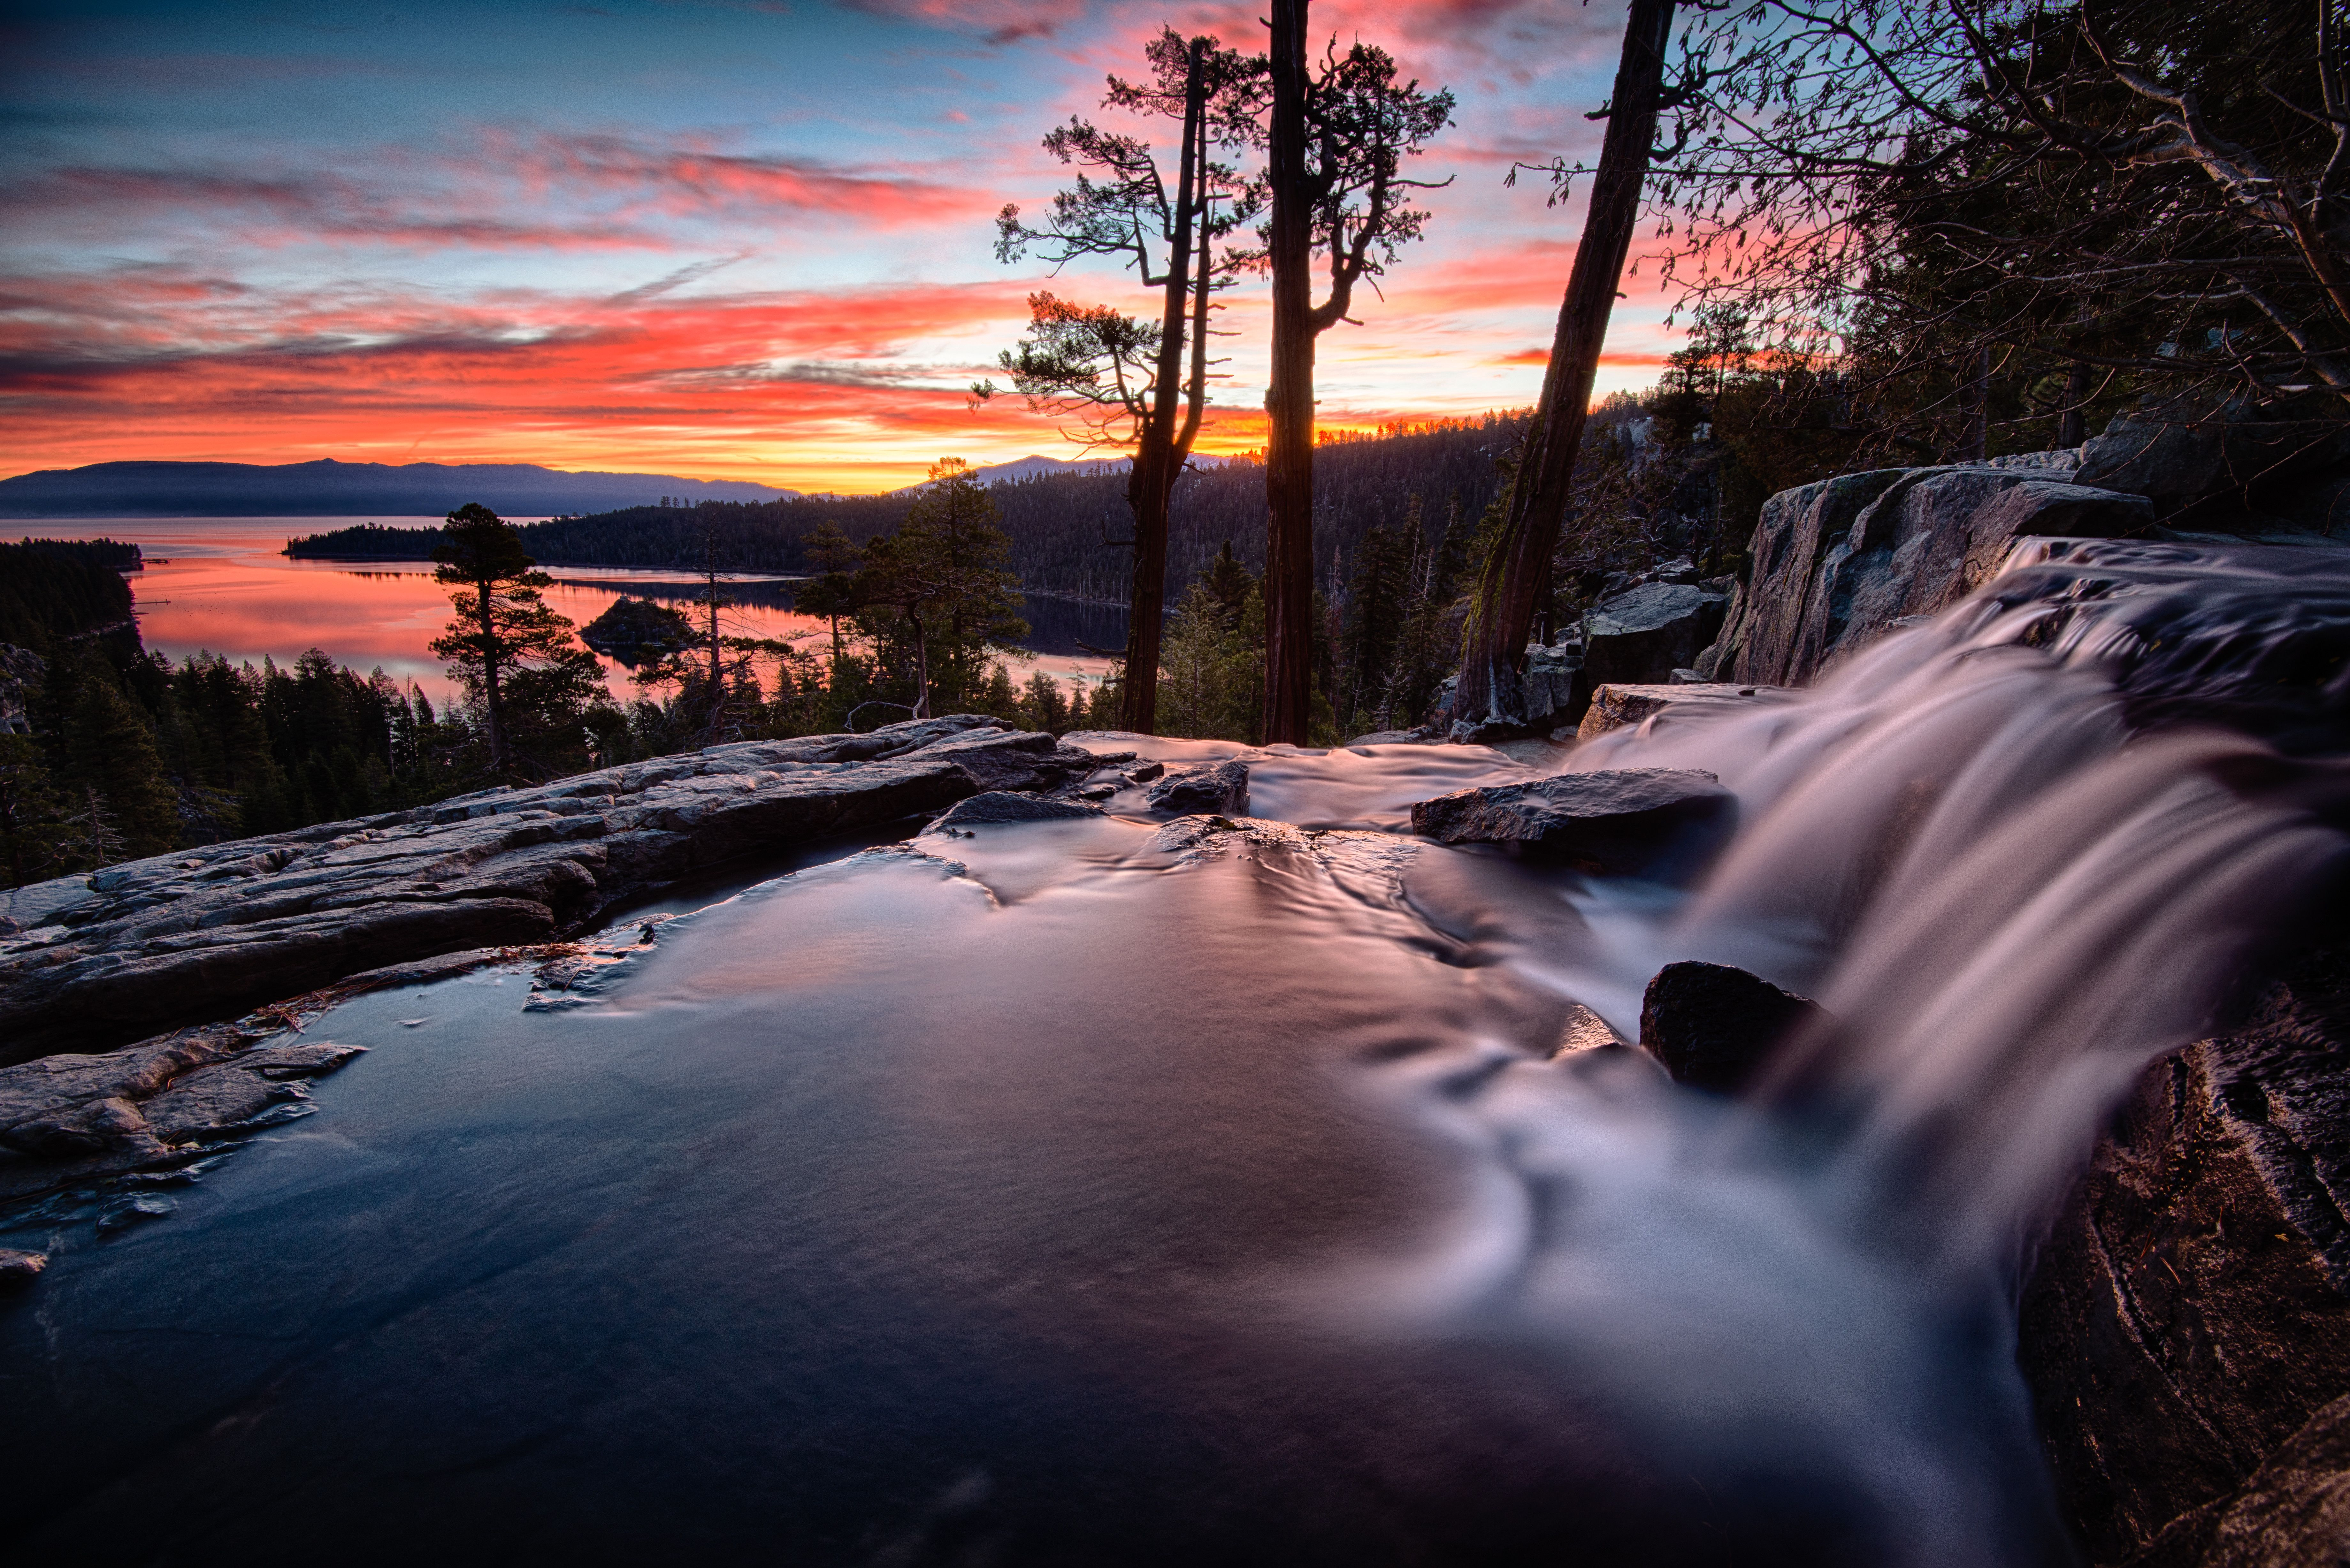 Sunset over Lake Tahoe from the Emerald Bay falls.